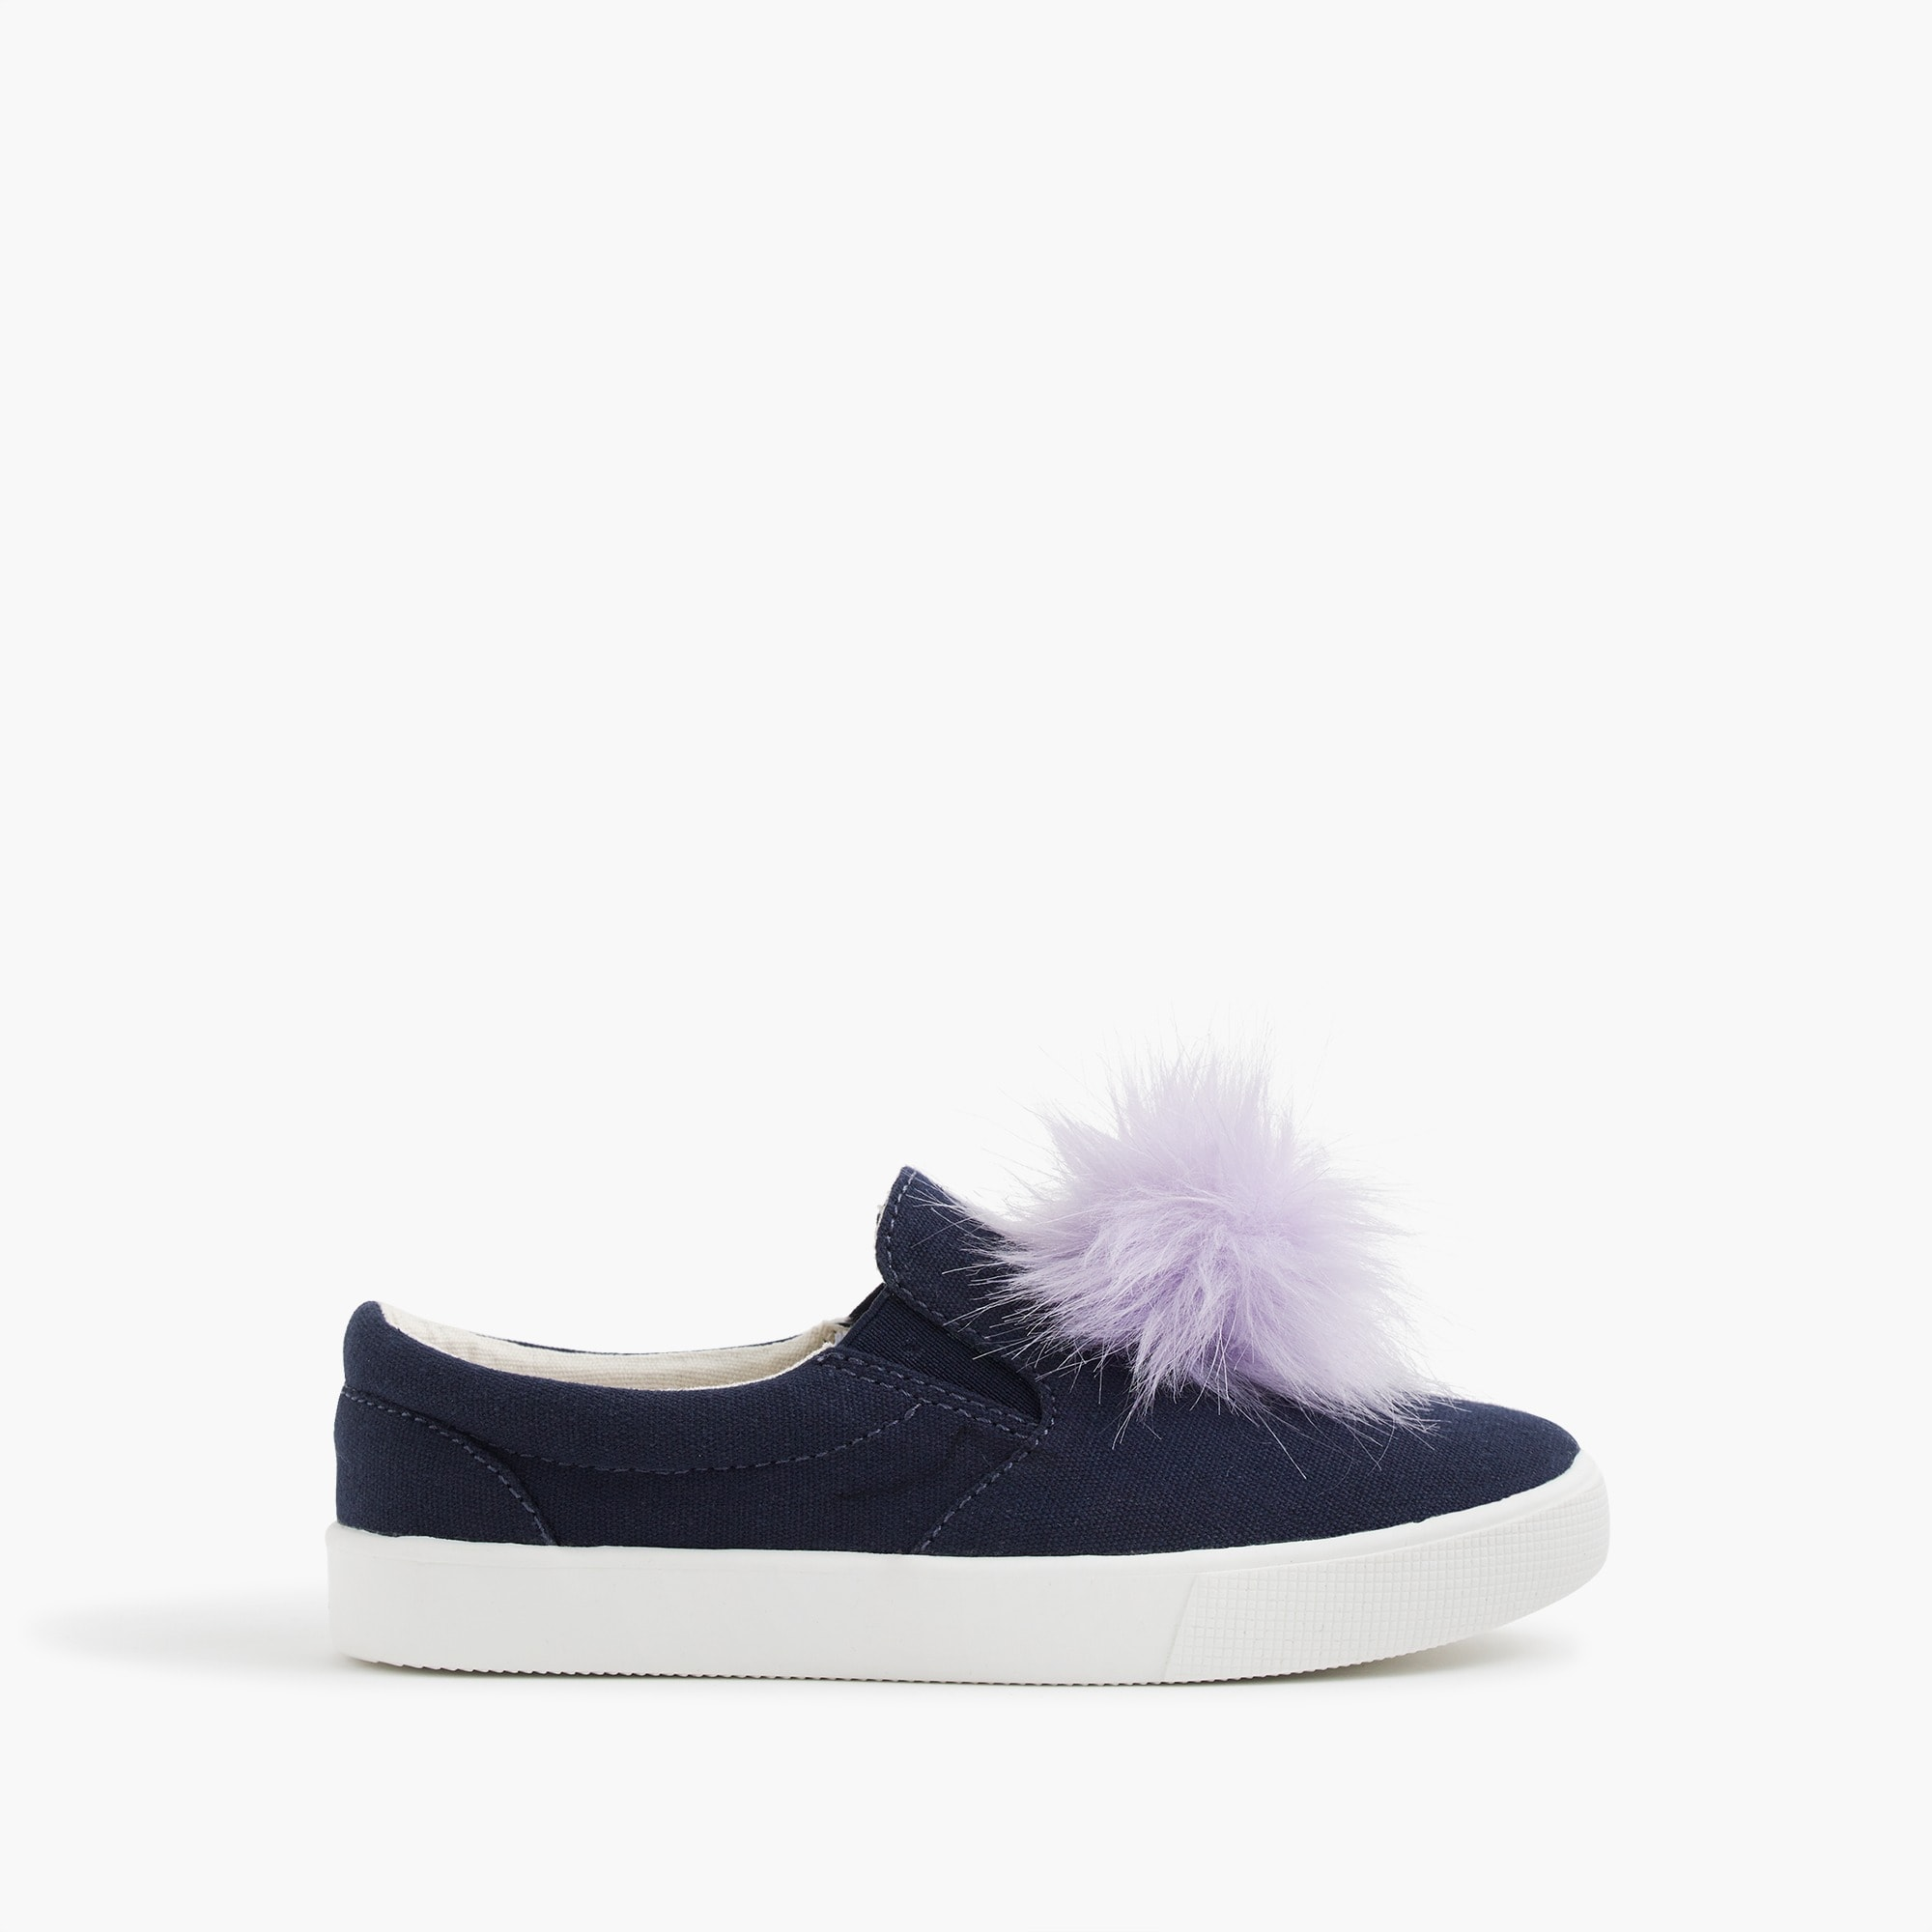 girls' slide sneakers with pom-poms : girl shoes & sneakers